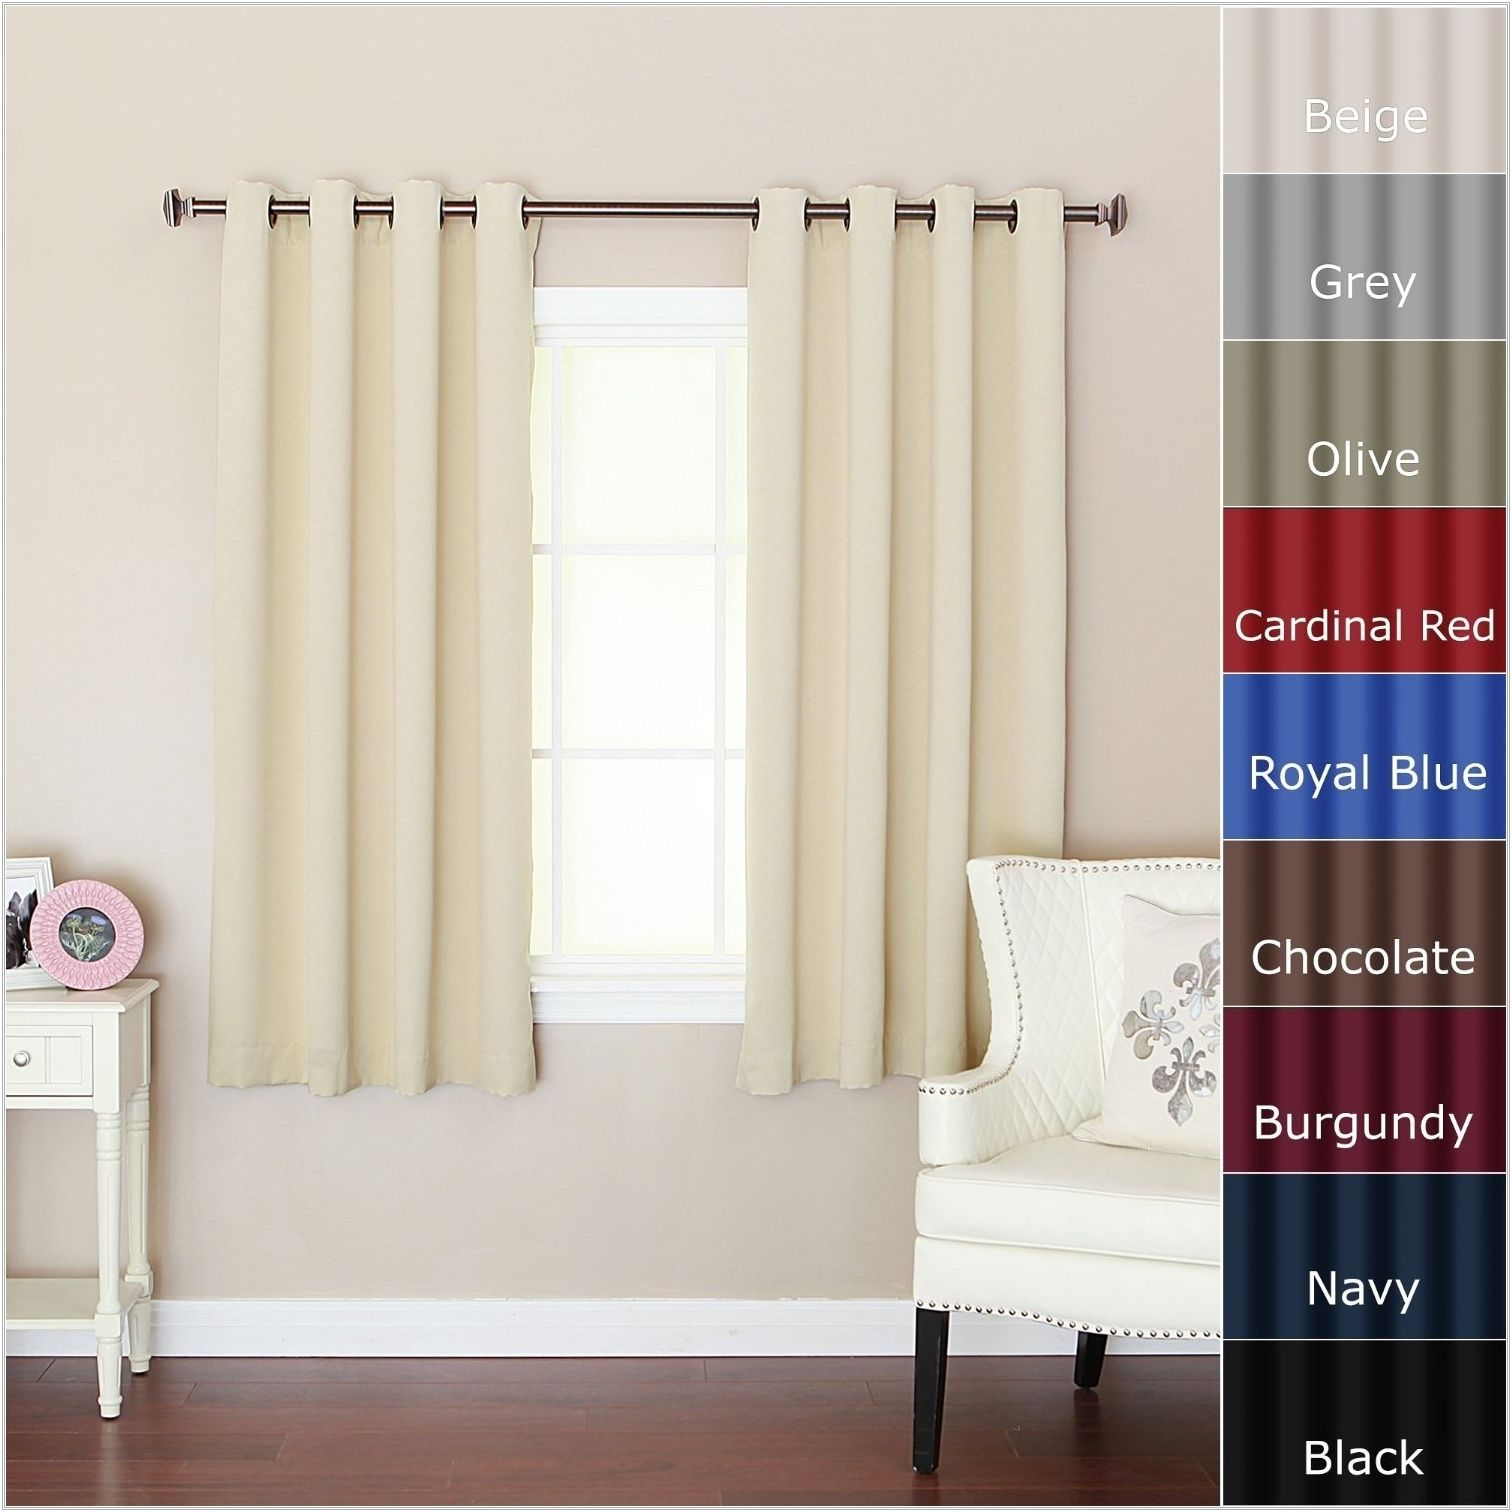 Short Curtains For Windows Ideas   Small window curtains, Window ...